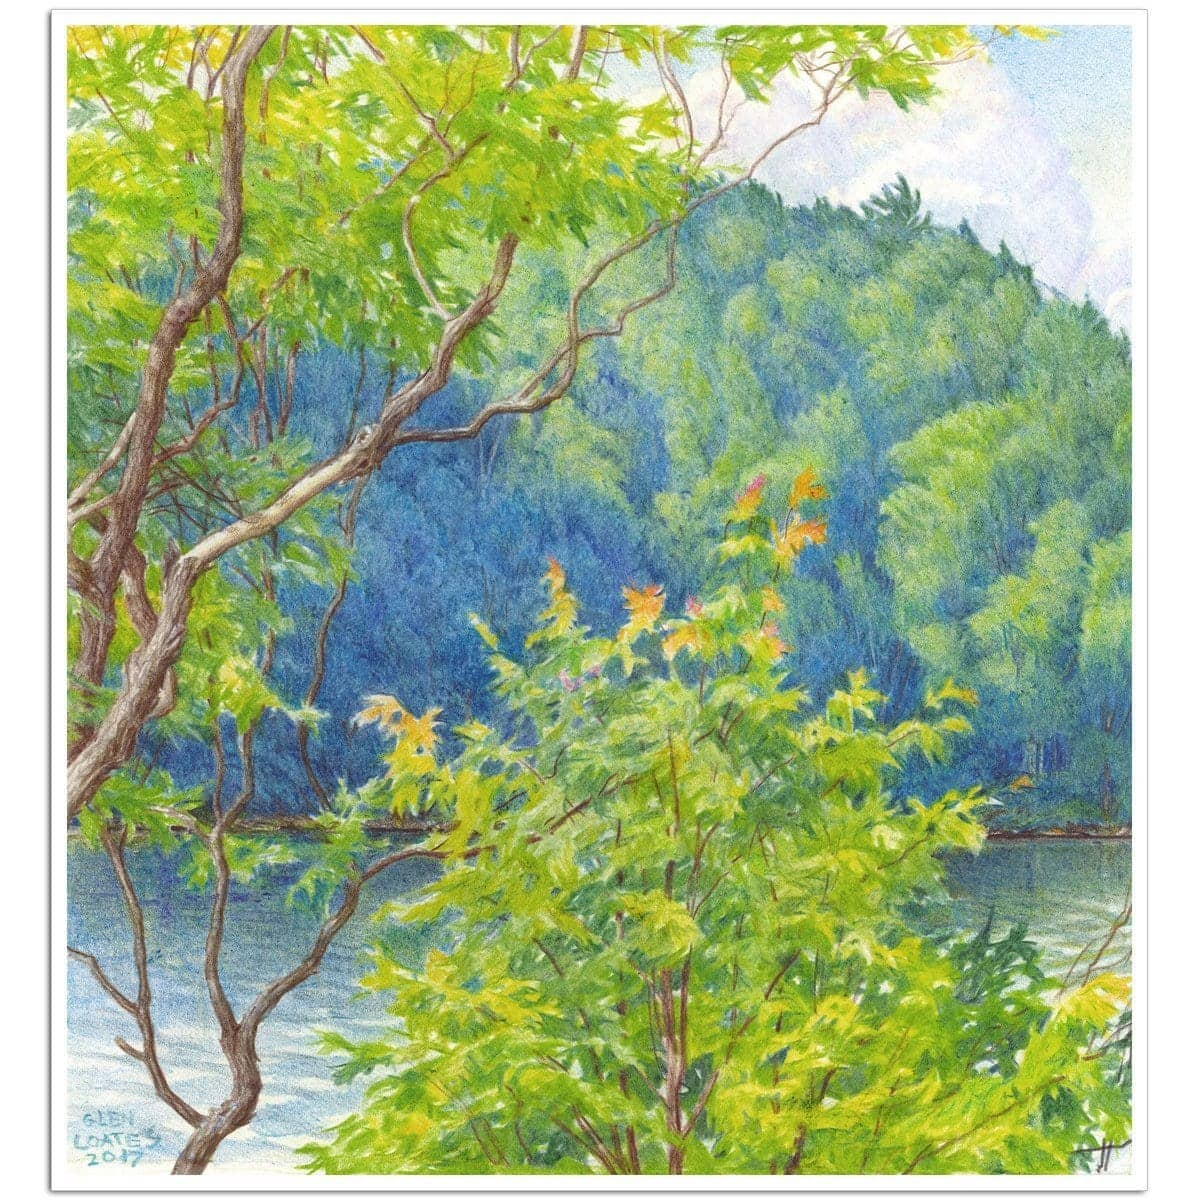 Humid Afternoon At Drag Lake - Art Print by Glen Loates from the Glen Loates Store